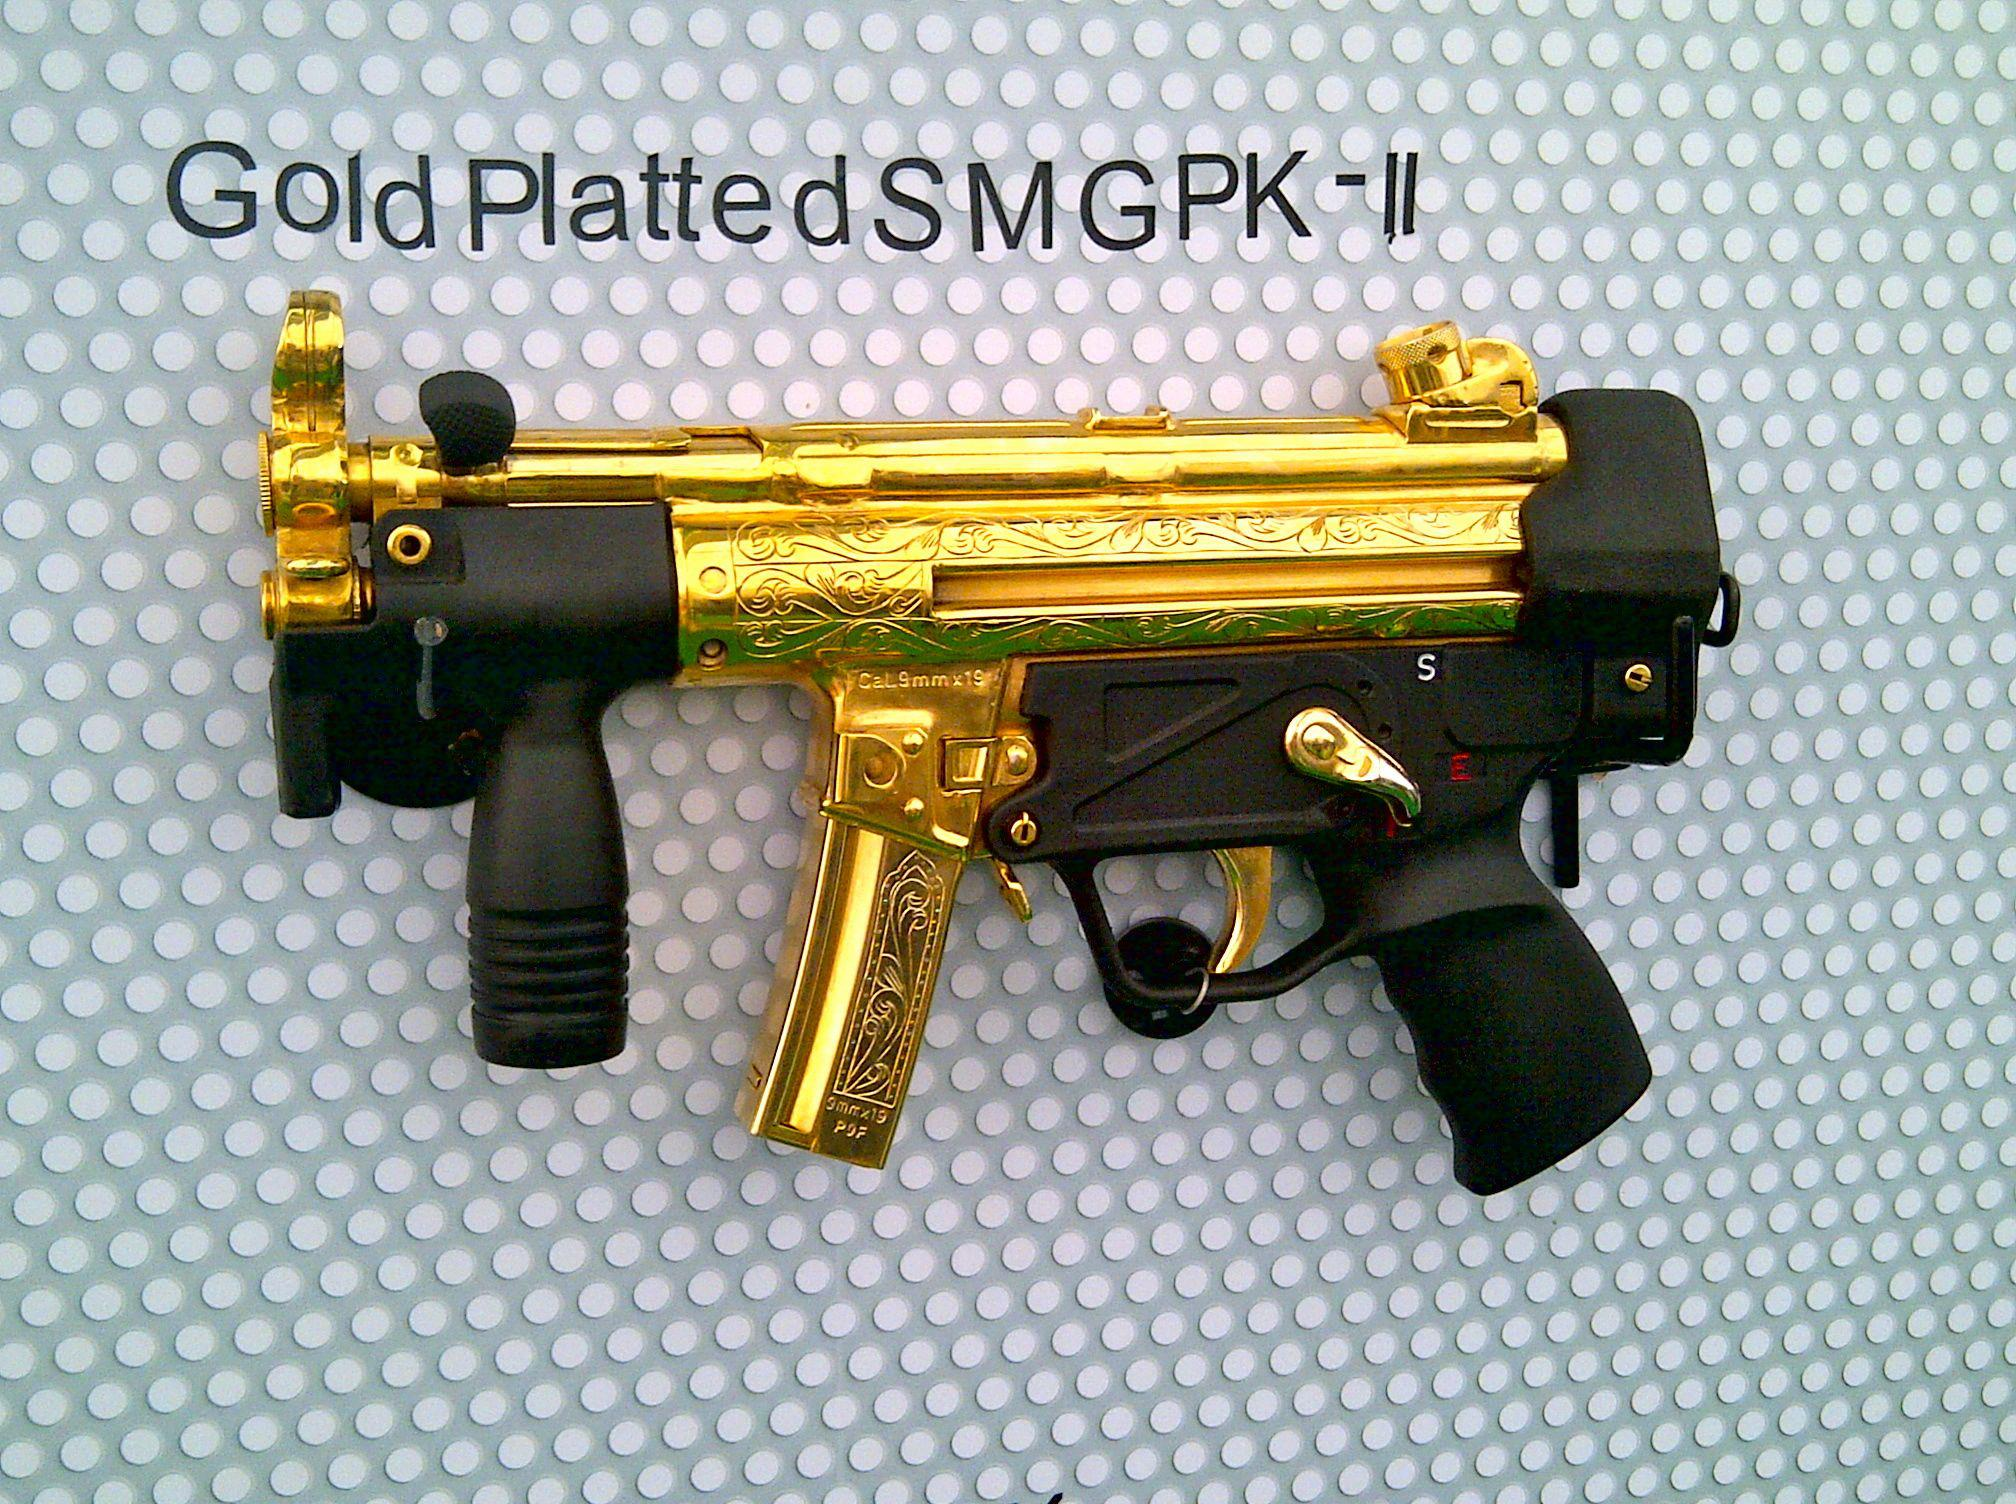 Gold Platted SMGPK-2